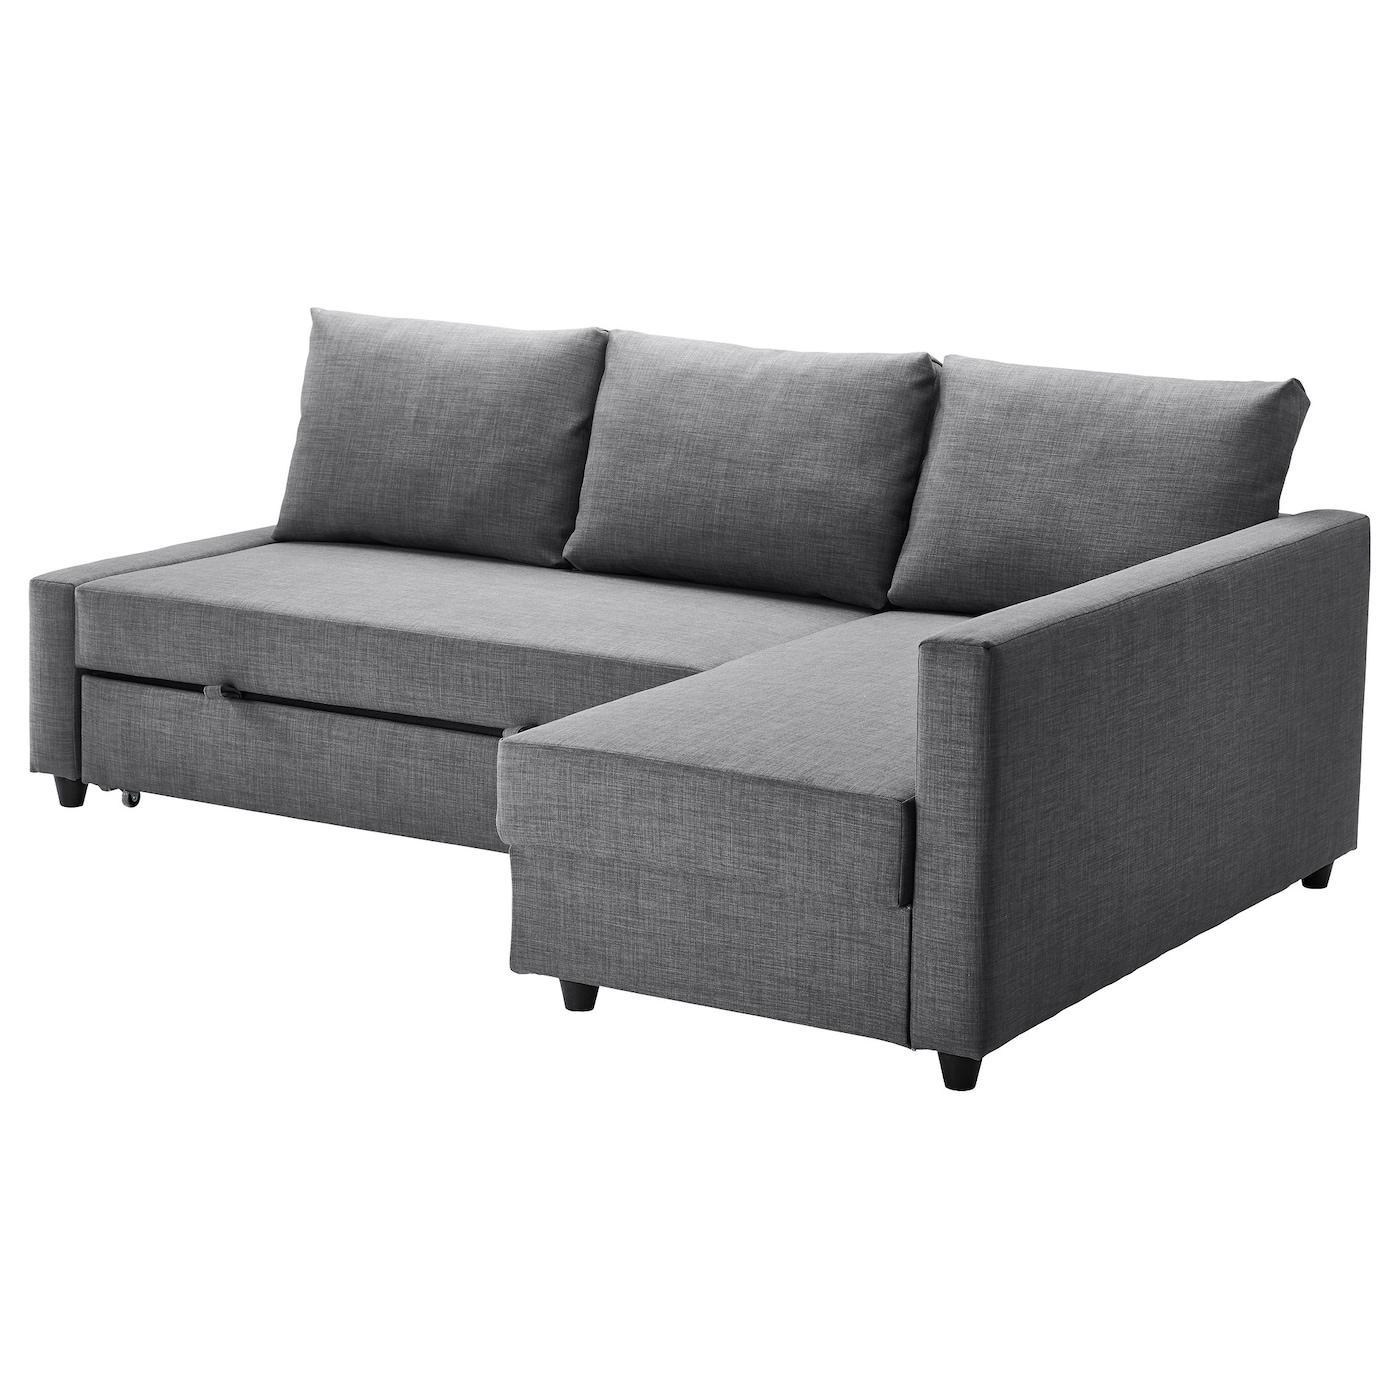 friheten corner sofa bed with storage skiftebo dark grey ikea rh ikea com storage sofa bed ikea storage sofa bed ikea